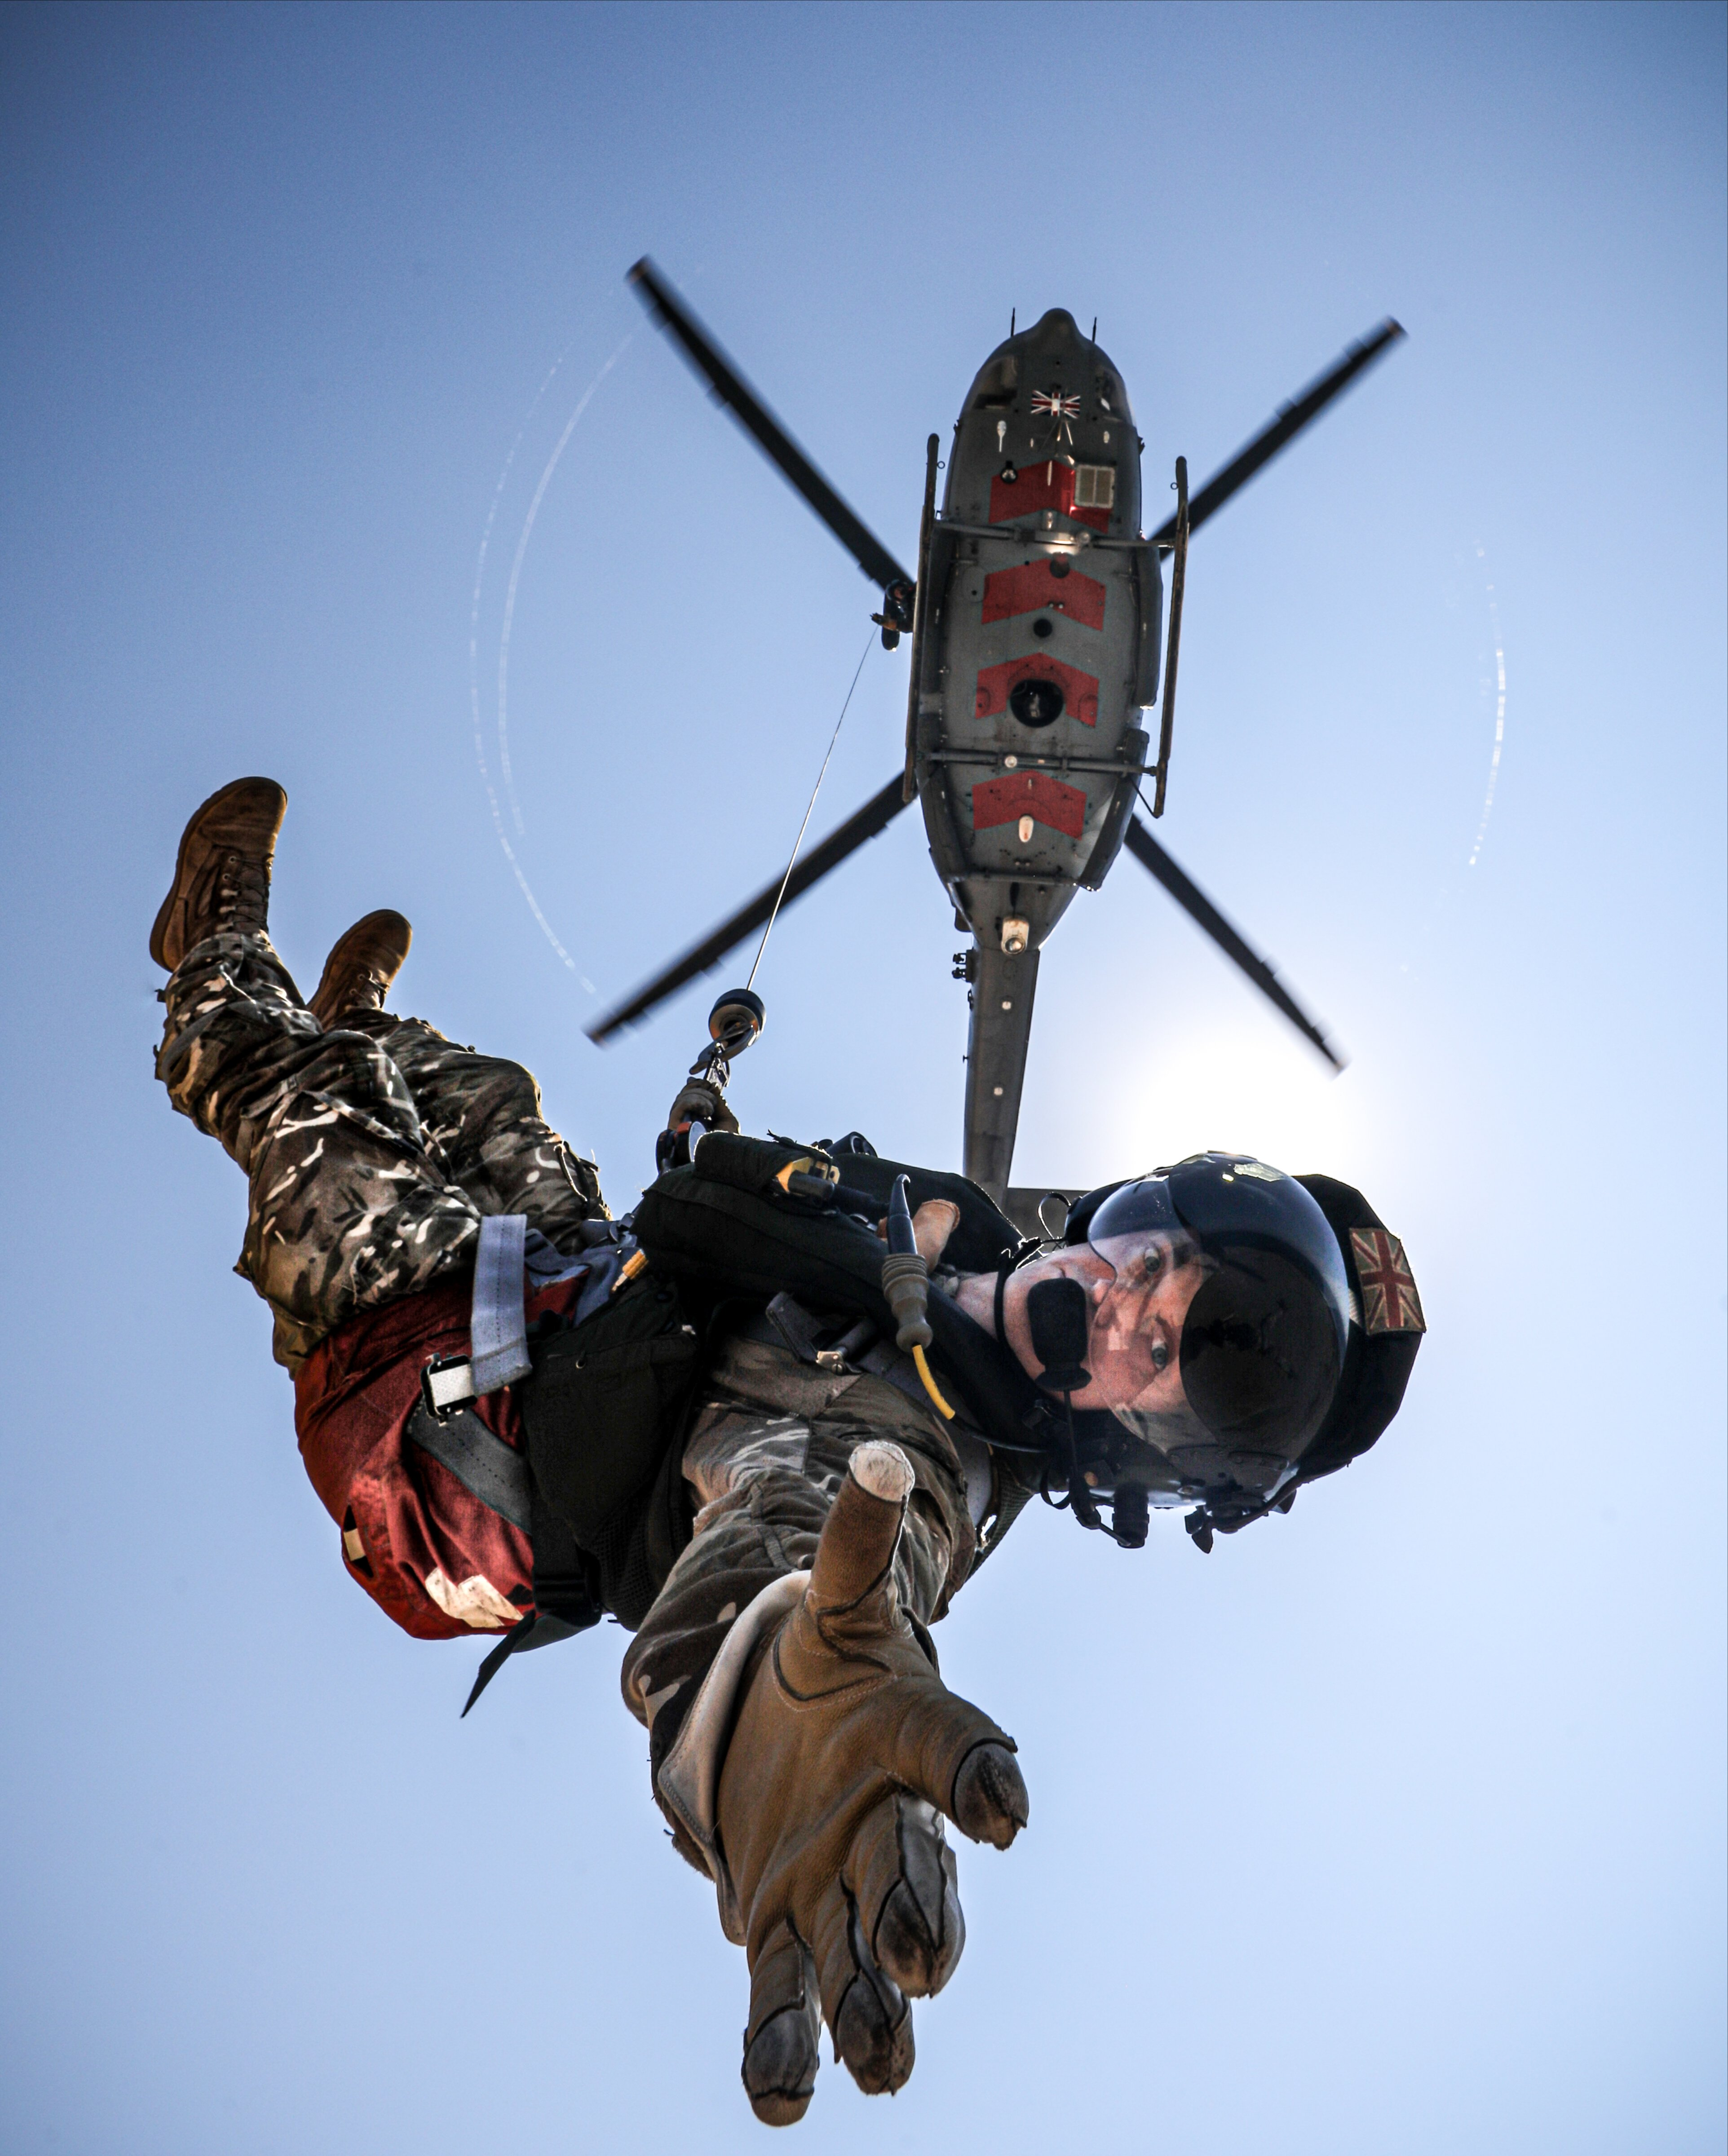 Griffin HAR2 and winchman [MoD Crown Copyright/Cpl Phil Dye]